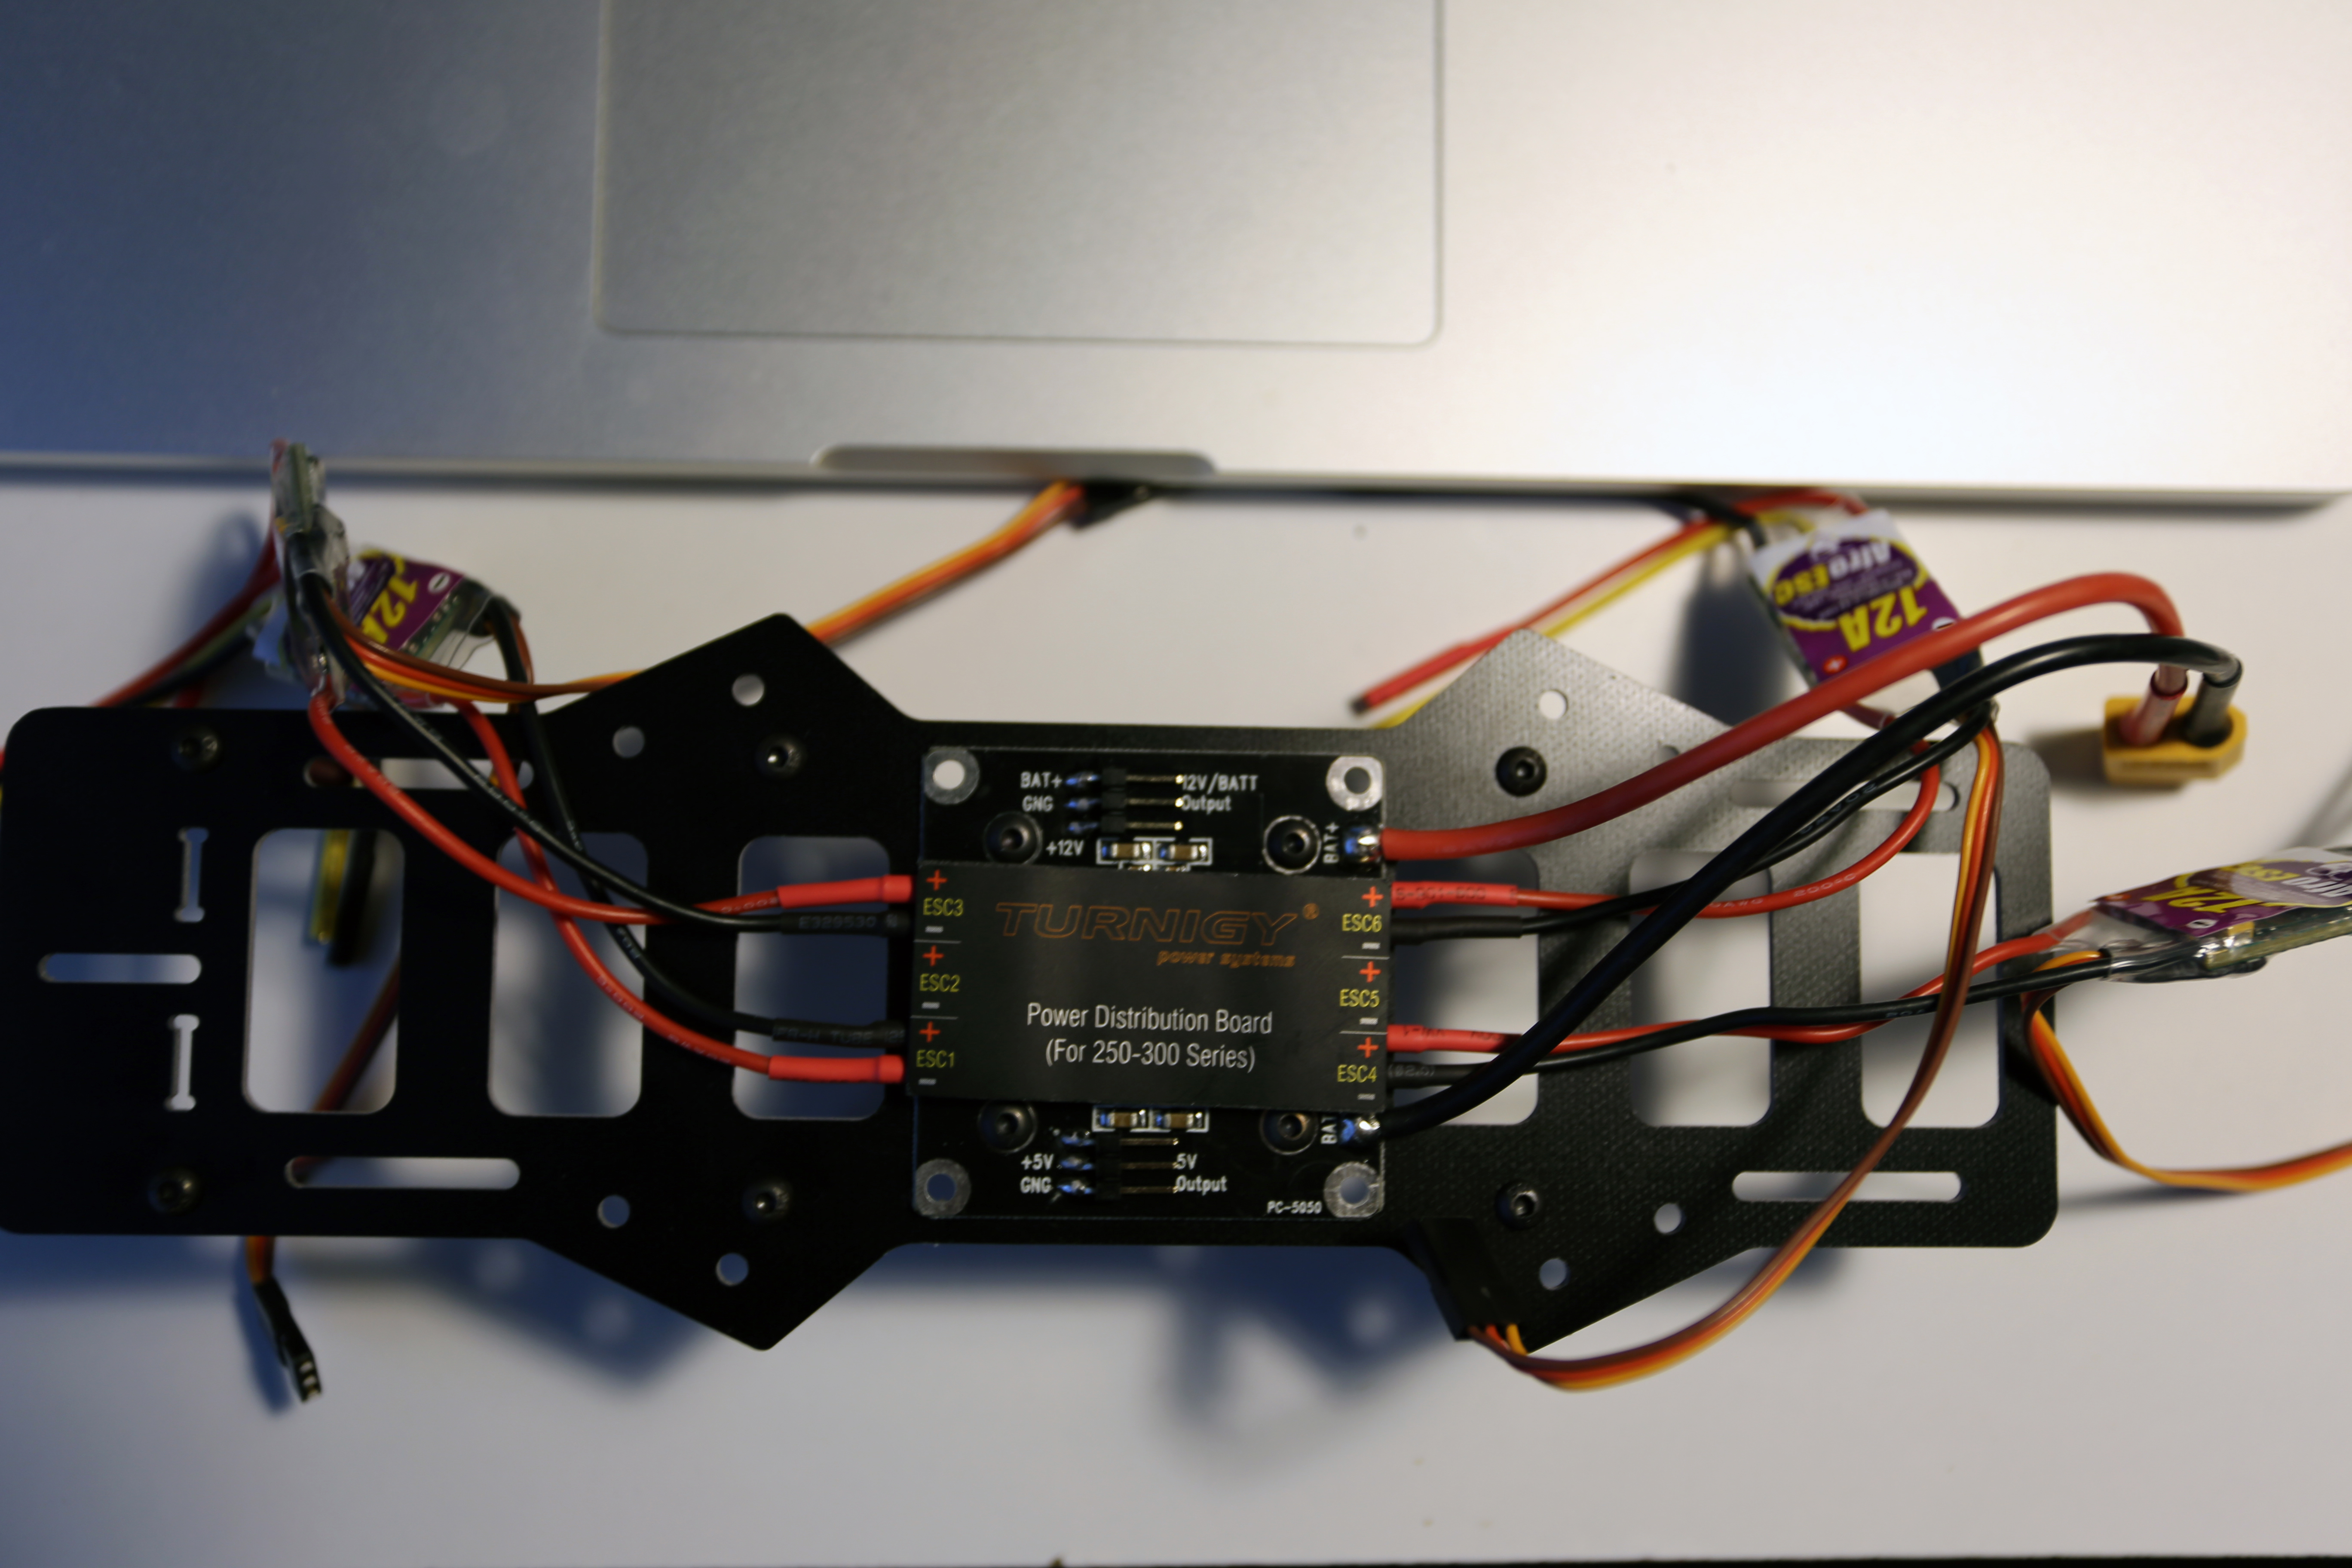 Quadcopter Wiring Distribution Board I Bought The Power On A Whim But It Ended Up Simplify Lot Of And Work Needed To Get This Together